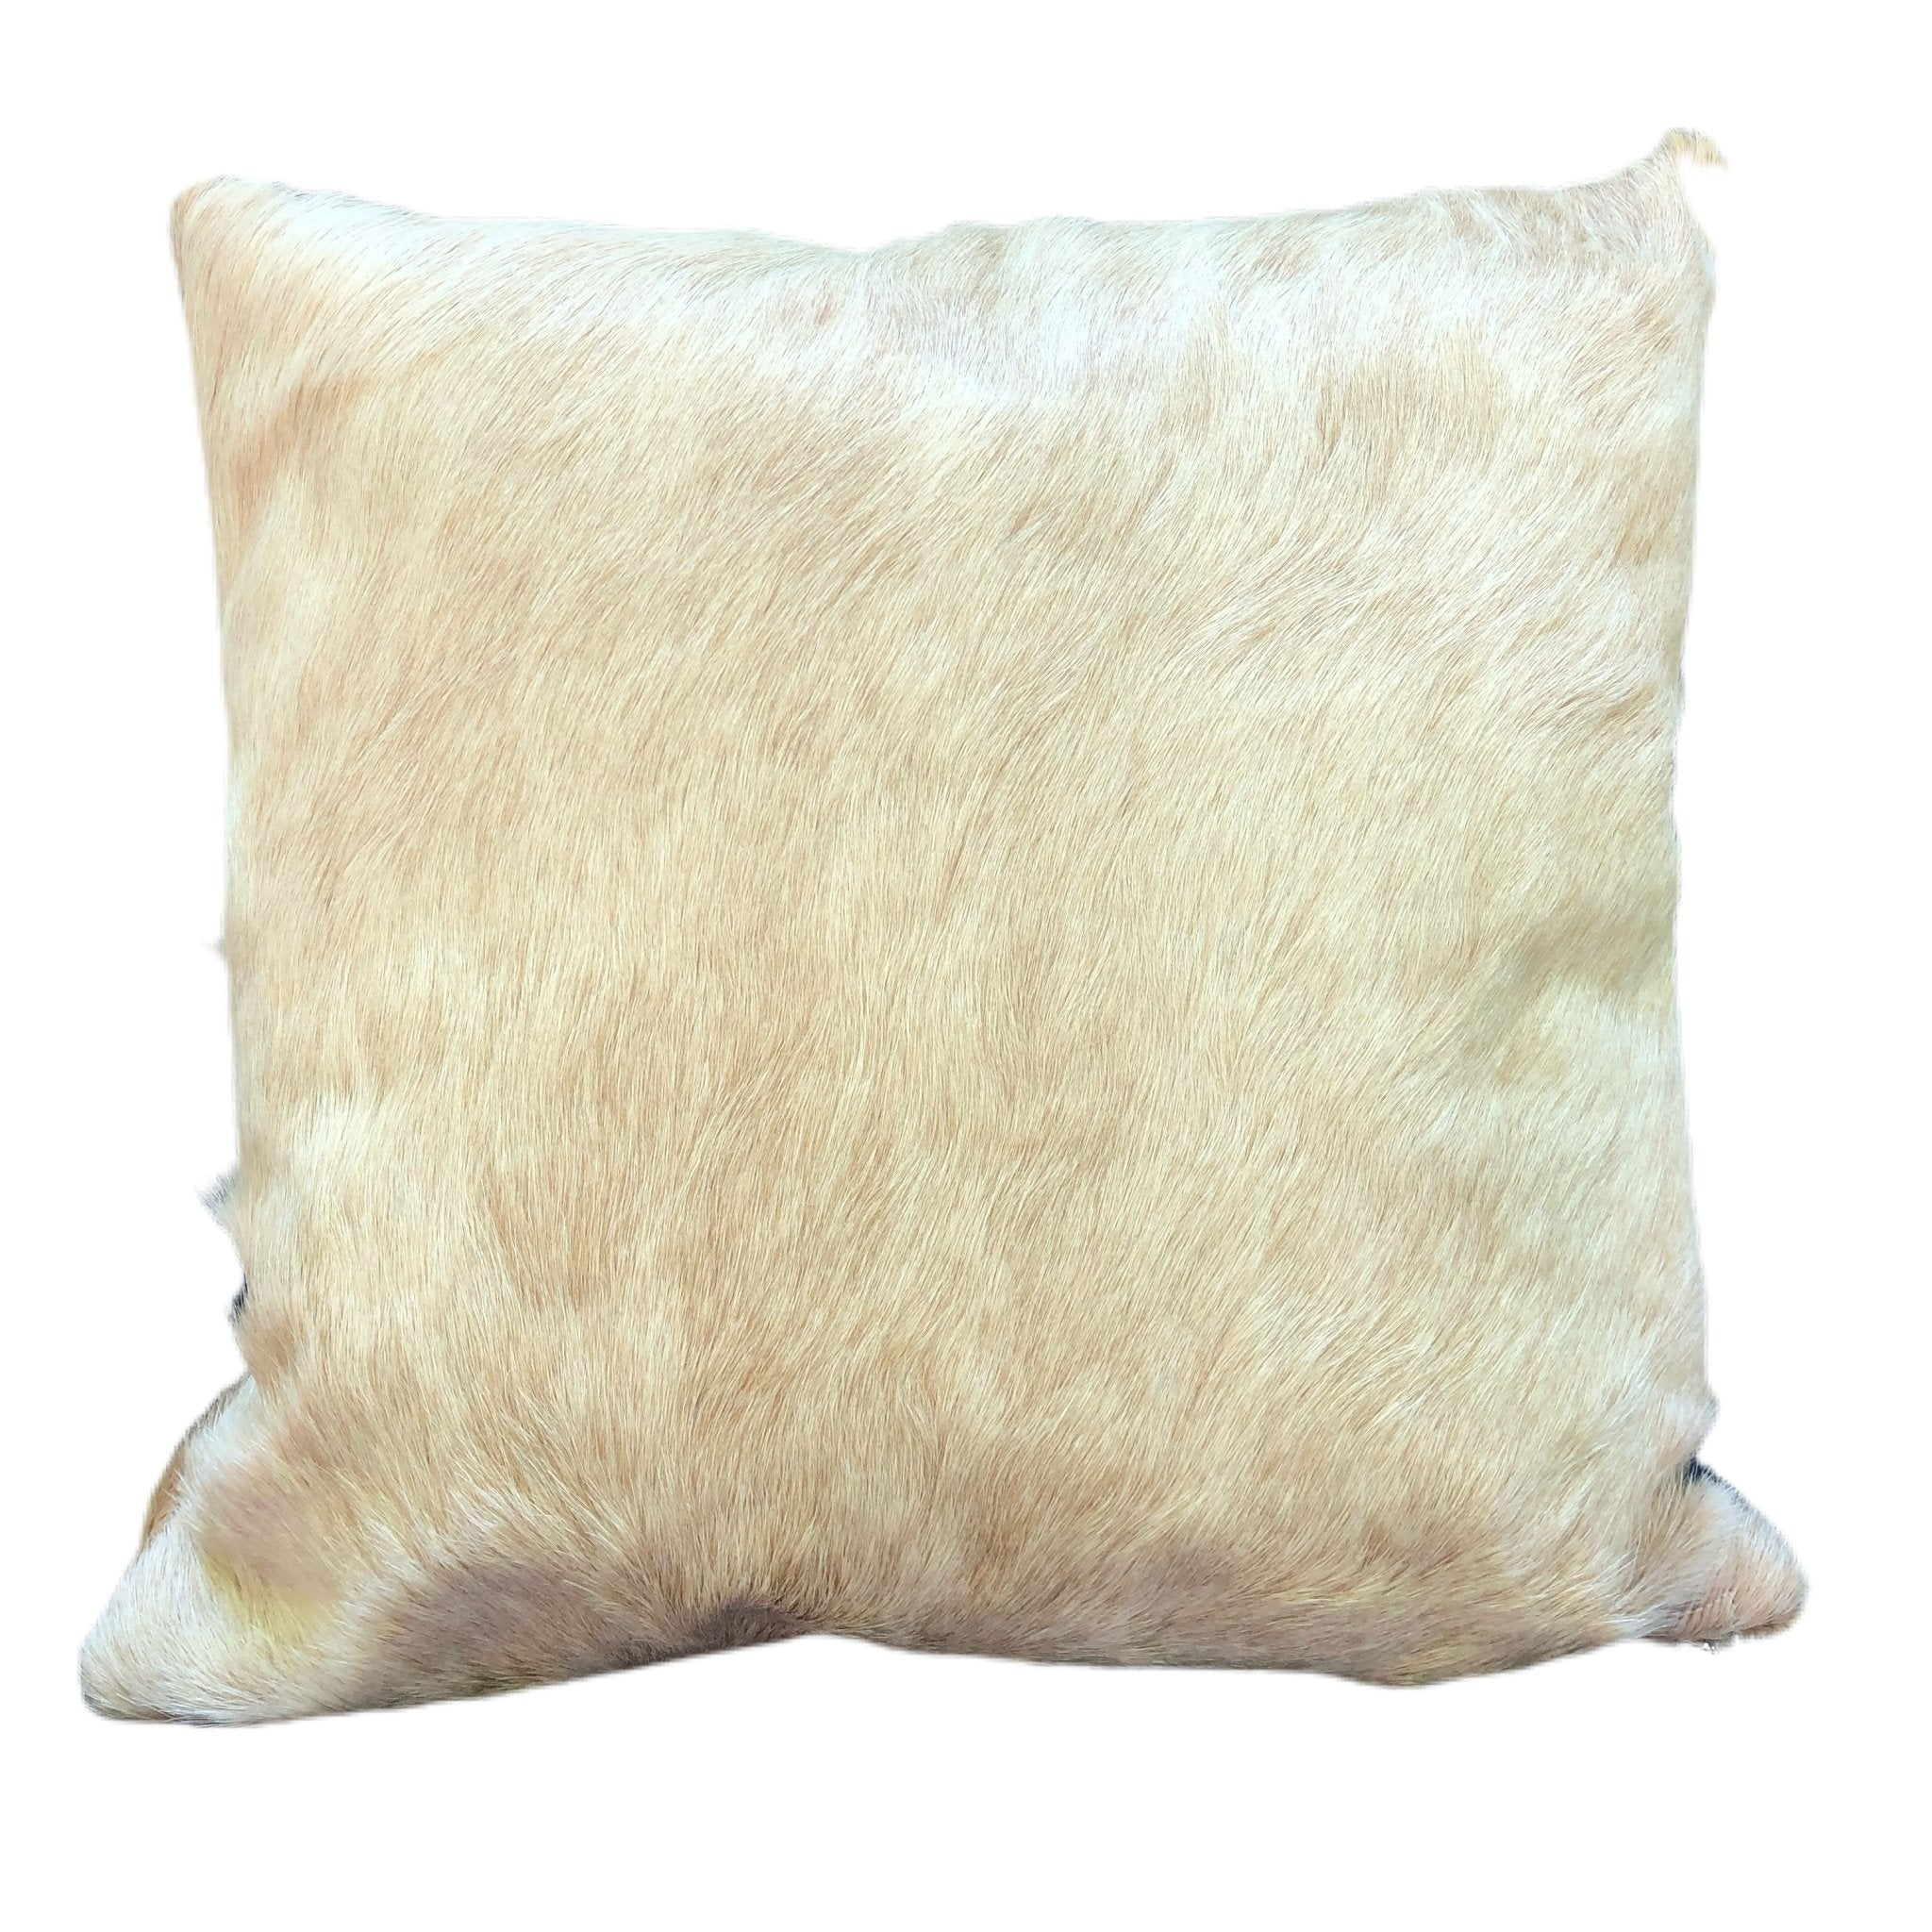 Solid Light Beige Mix 18x18 Pillow - Inspired Evanston